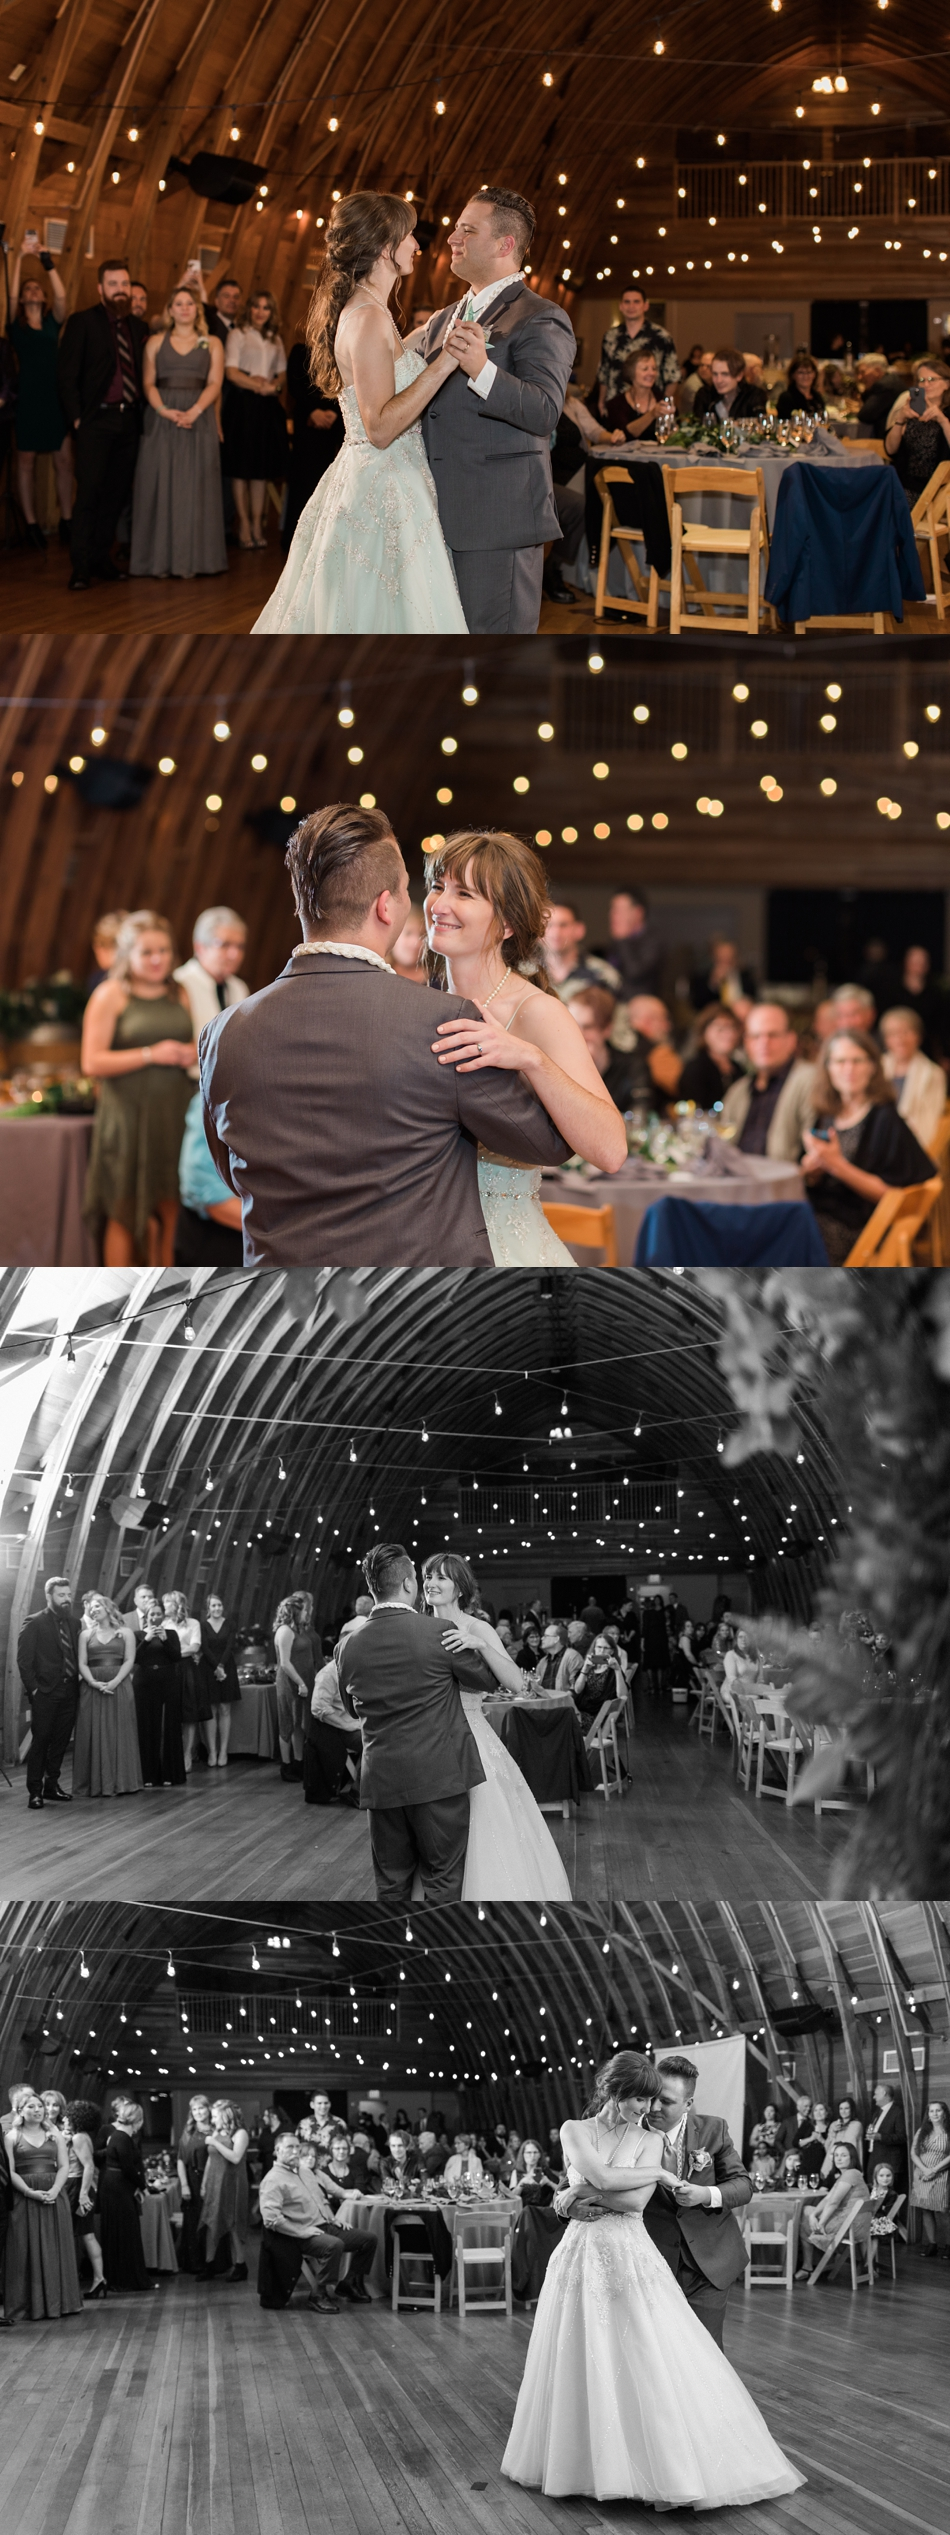 A photo of a bride and groom's first dance at a fall wedding at the Loft at Russell's in Bothell, a wedding venue near Seattle. | Joanna Monger Photography | Snohomish & Seattle Wedding Photographer